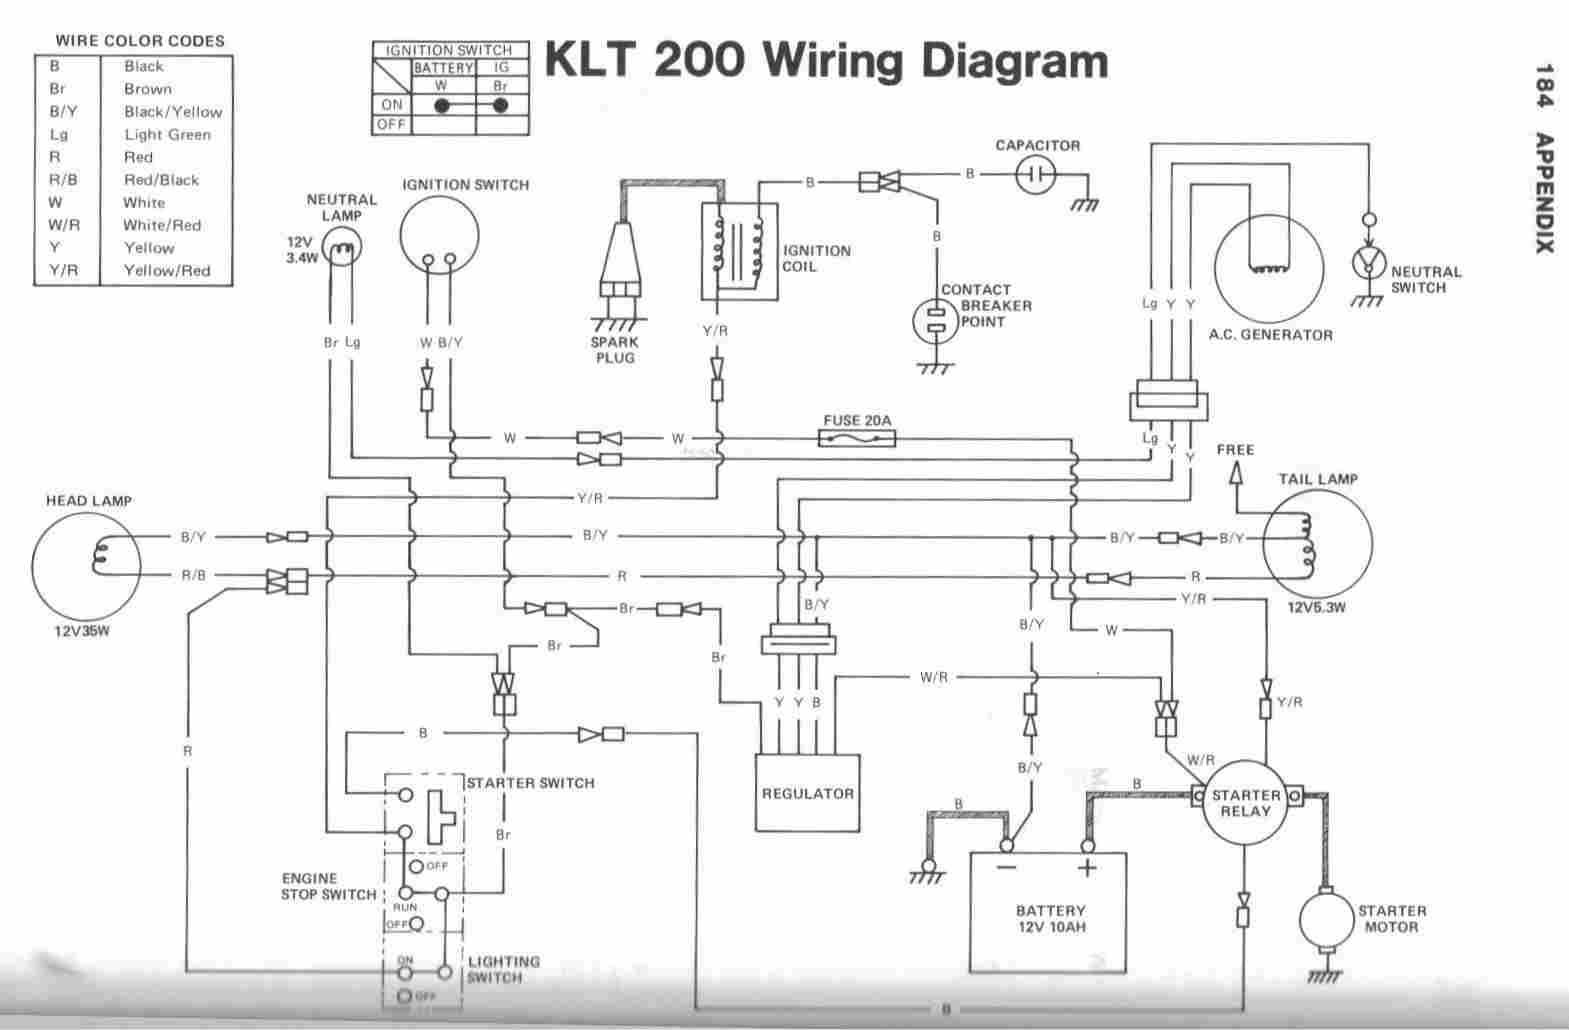 electrical wiring diagrams pdf residential electrical wiring diagrams pdf easy routing ...